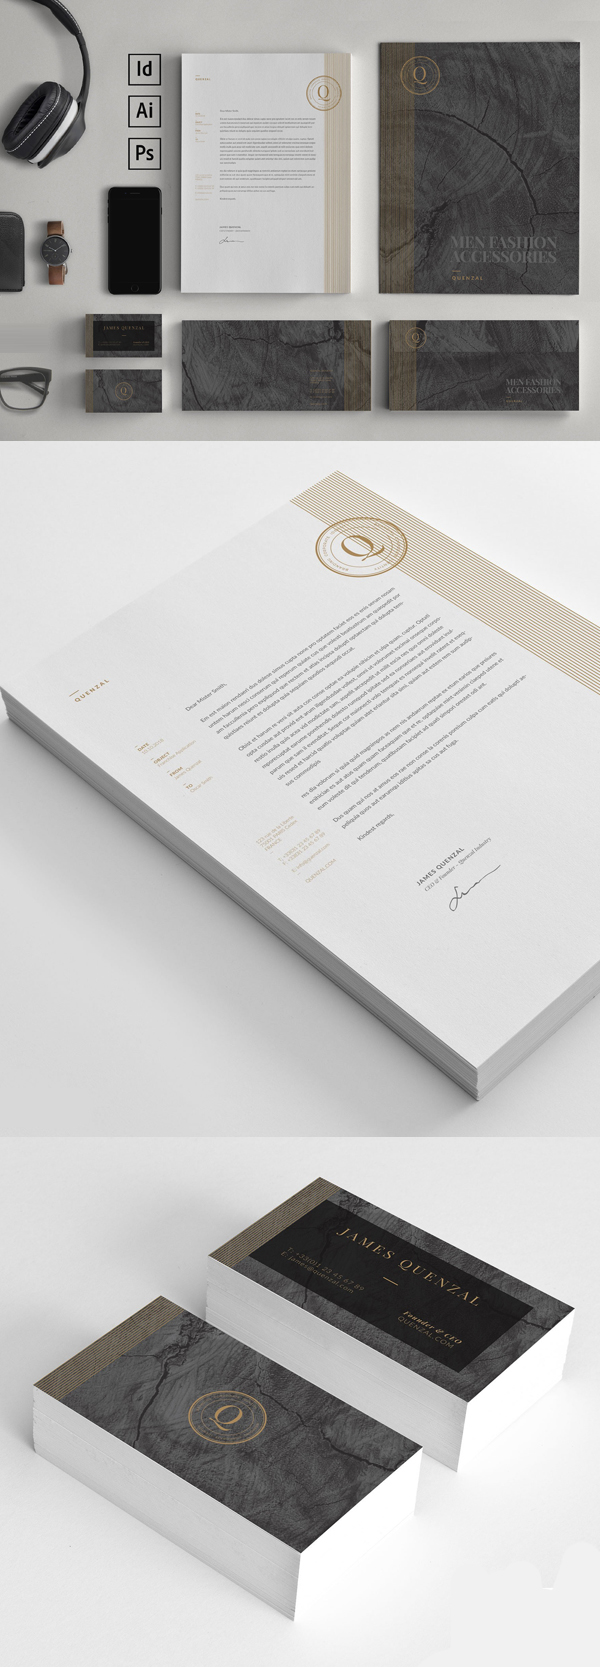 Modern Business Branding / Stationery Templates Design - 3